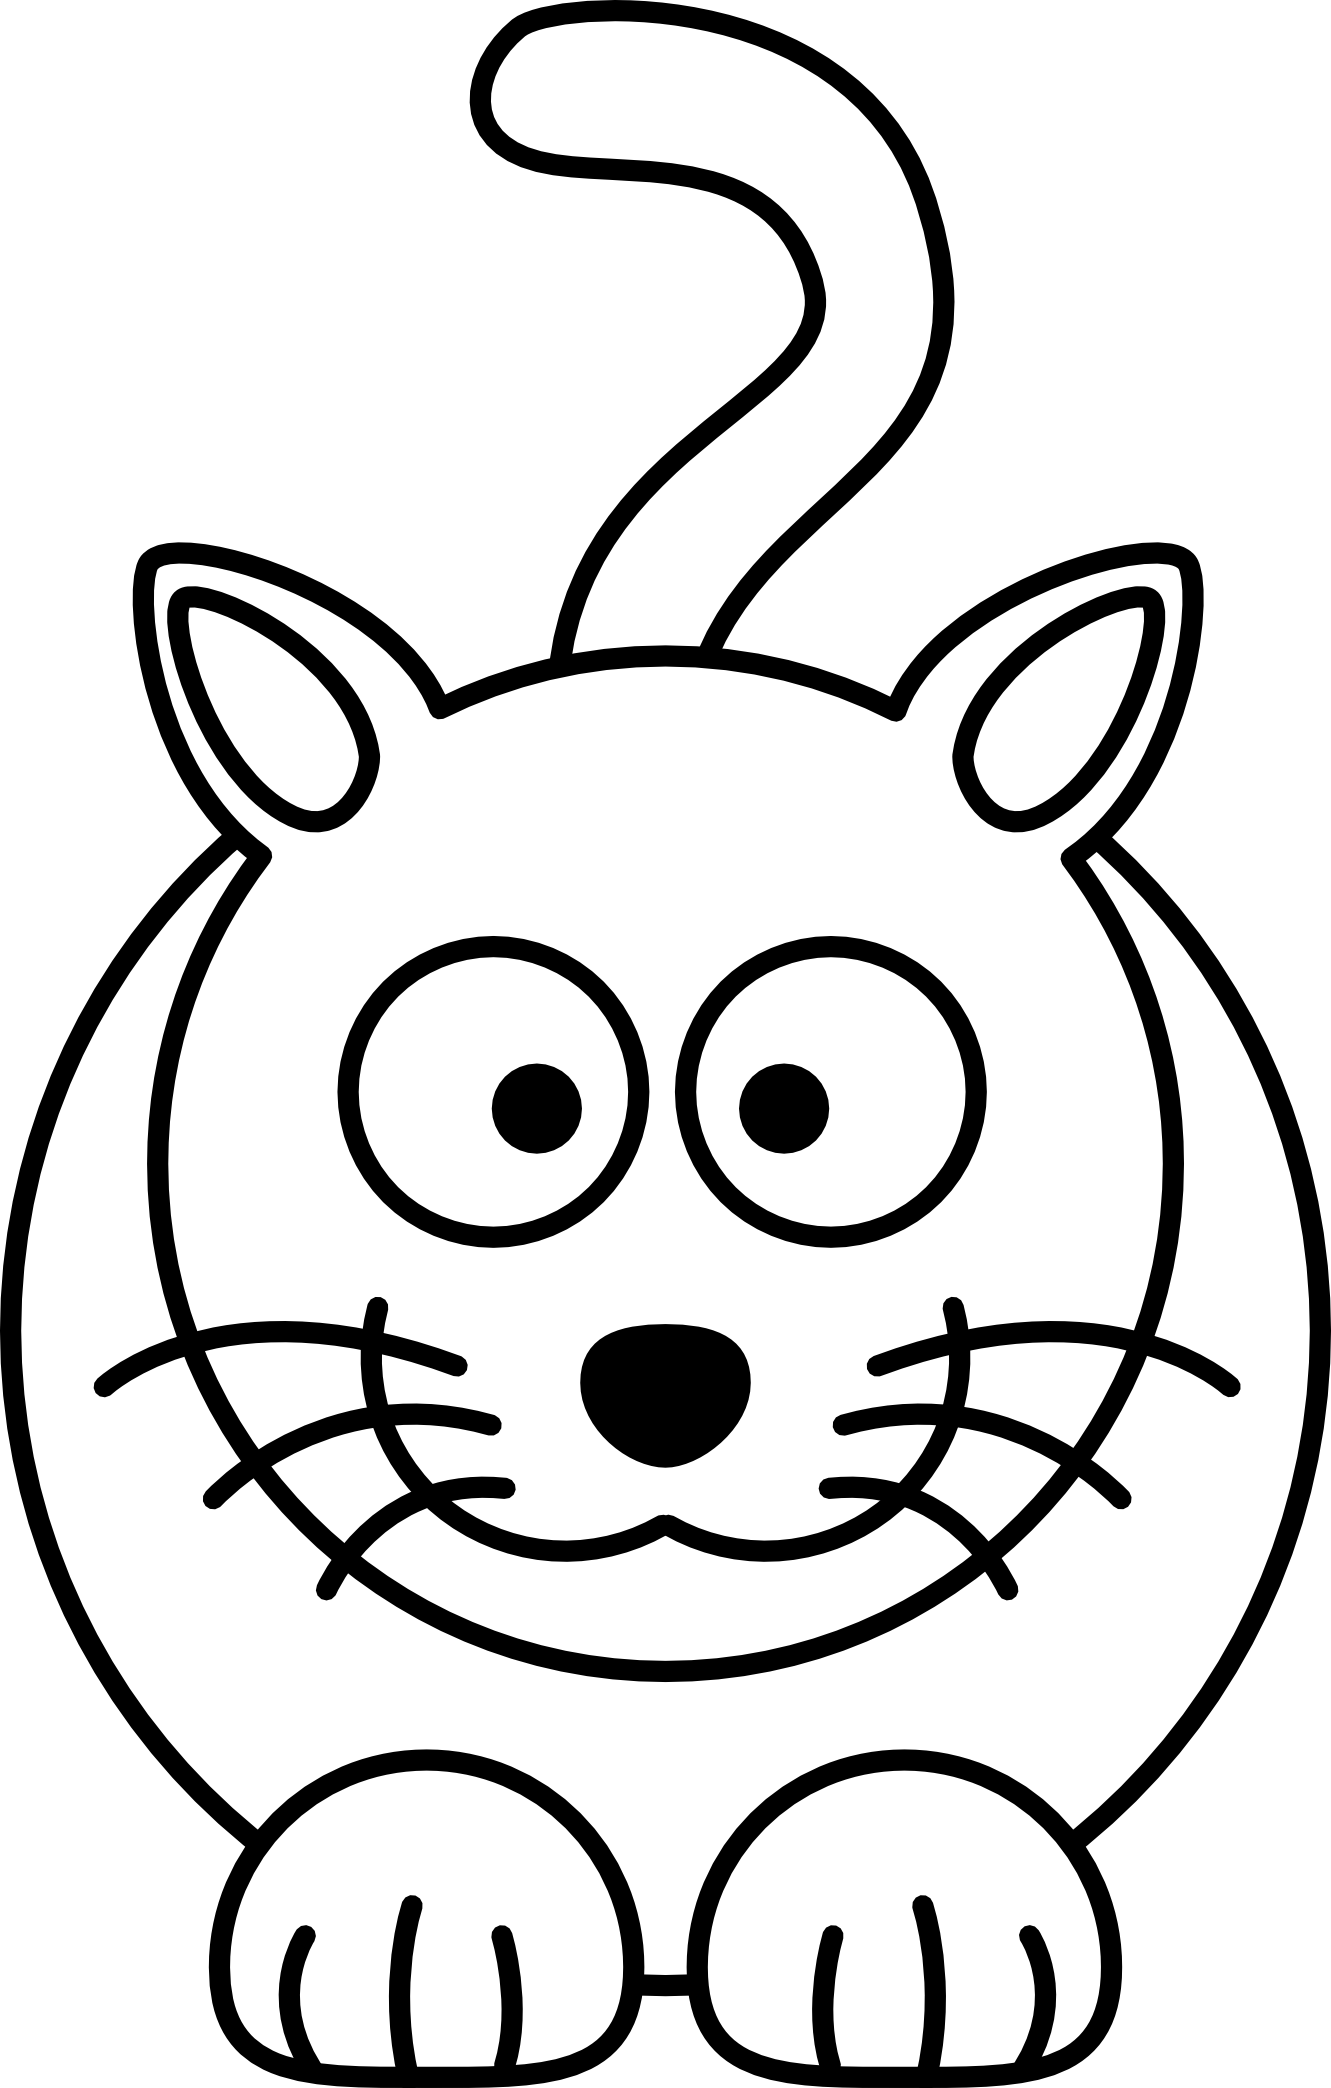 lemmling cartoon cat black white line art coloring book colouring